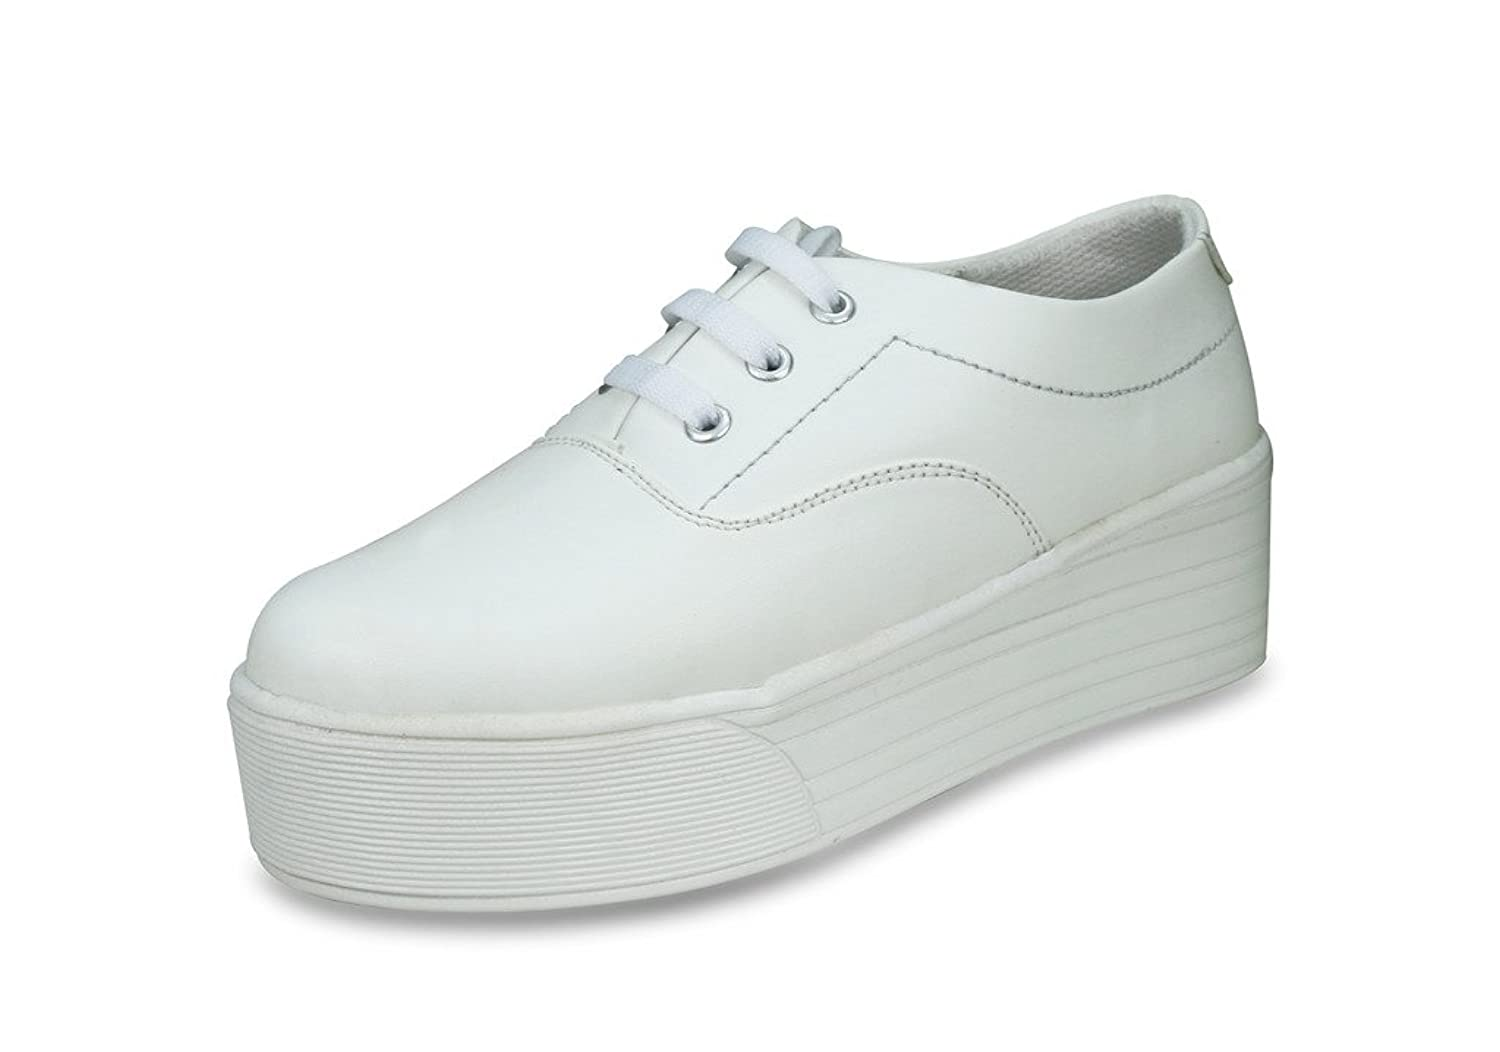 Beonza Women Premium White Sneakers casual shoes: Buy Online at Low Prices  in India - Amazon.in